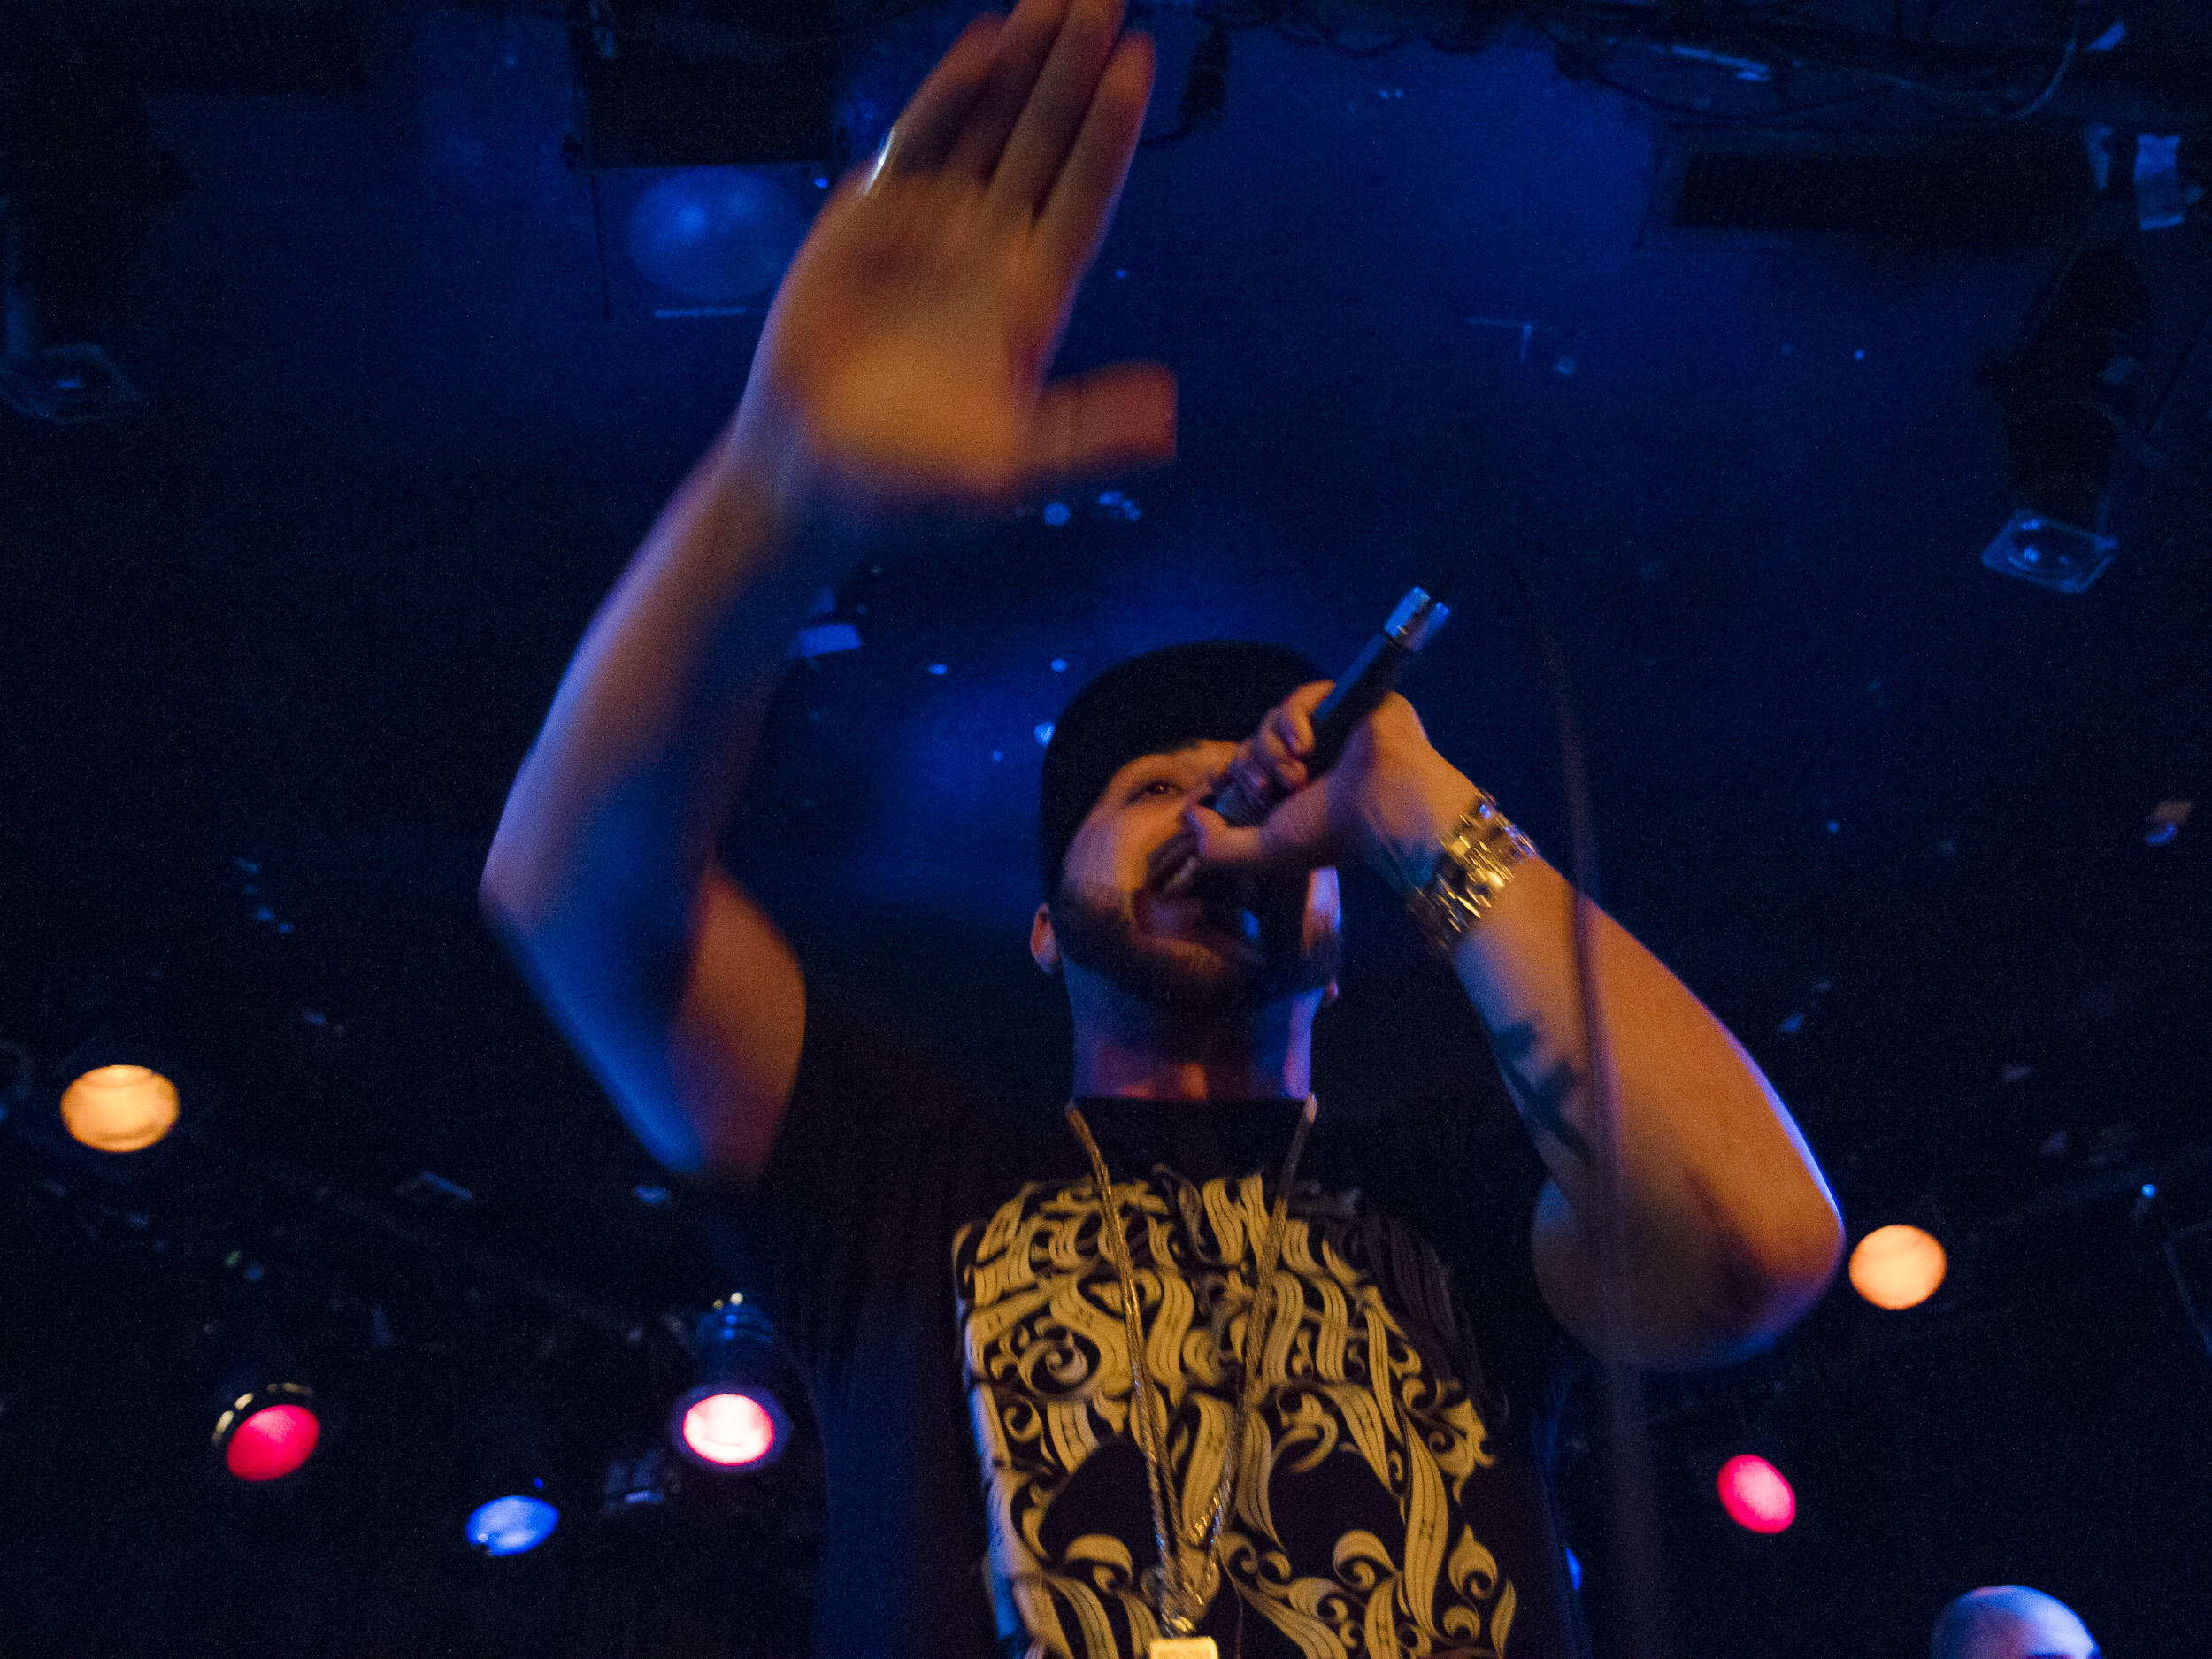 R-Mean performs at the Viper Room, Hollywood, CA 2015